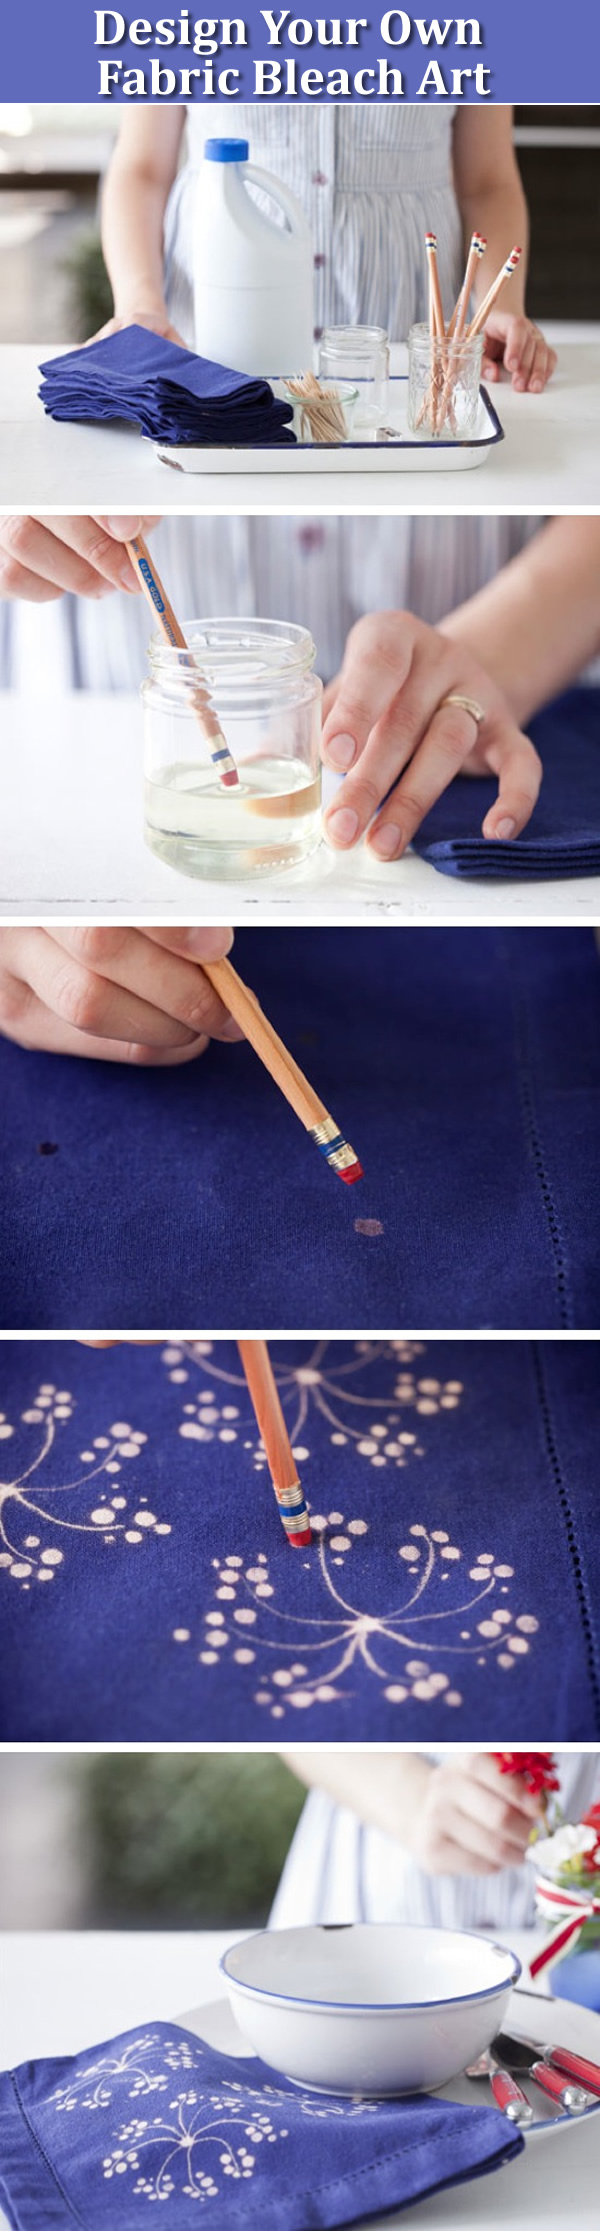 fabric bleach diy craft